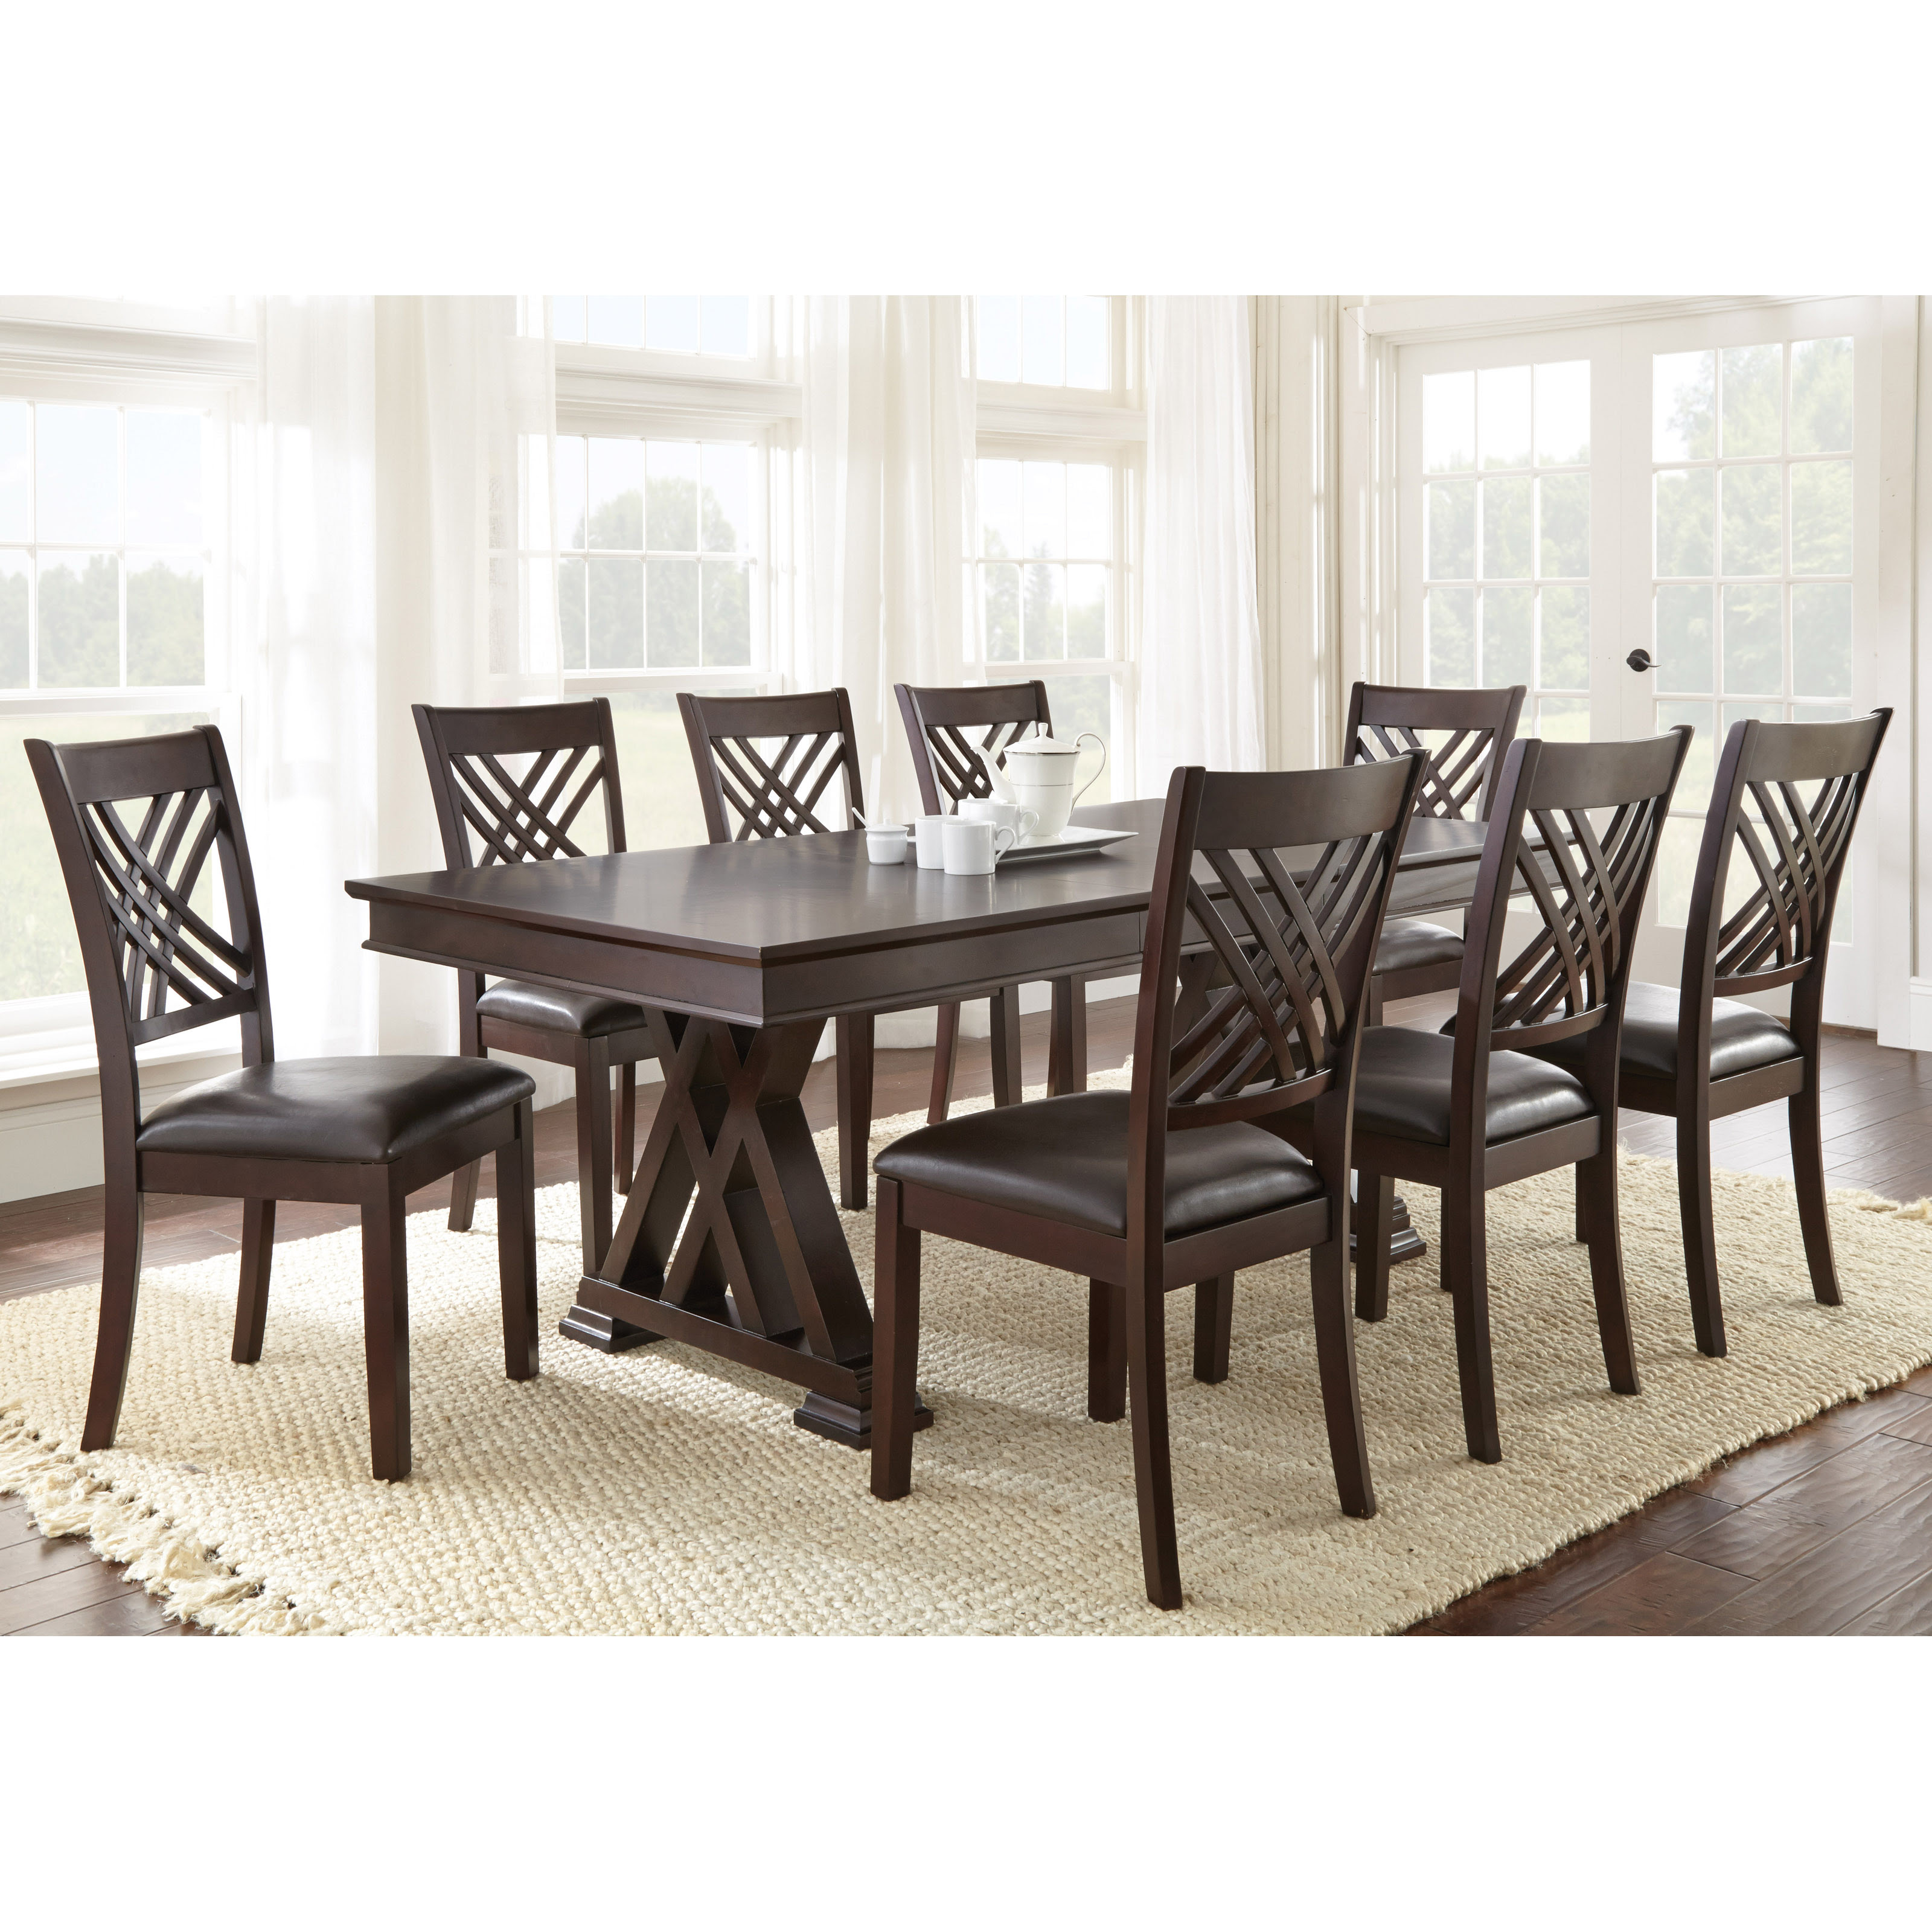 Steve Silver 9 Piece Adrian Dining Table Set  Dining Table Sets at Hayneedle